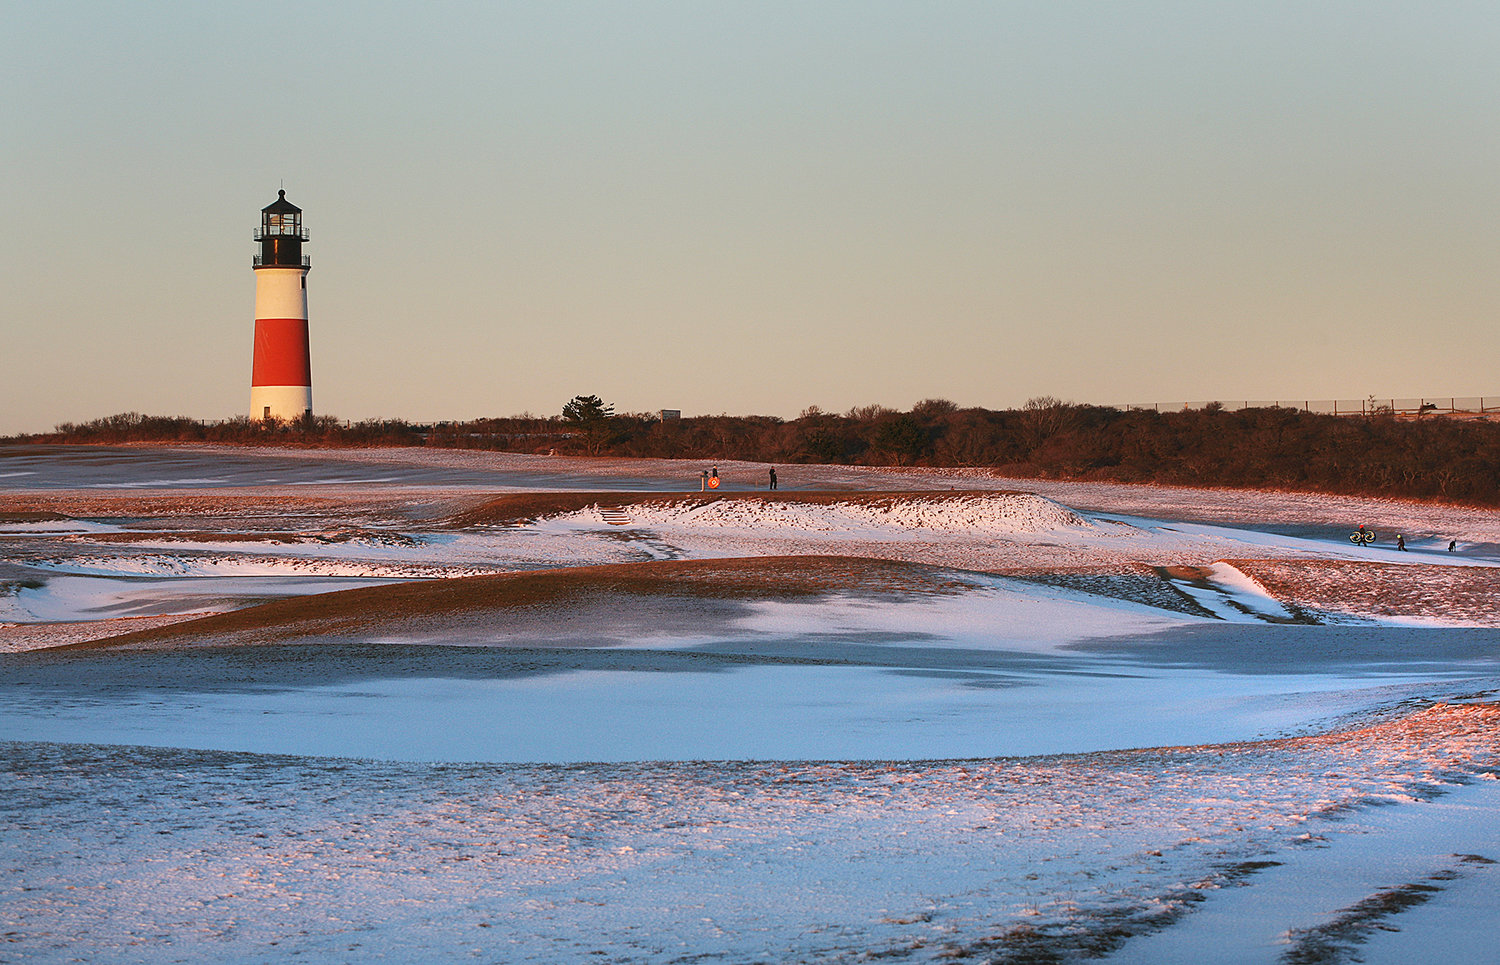 MONDAY, FEBRUARY 8, 2021 -- Snow covers the Sankaty Head Golf Club course as the setting sun illuminates Sankaty Head Lighthouse on Monday following Sunday's snow storm. Photo by Ray K. Saunders